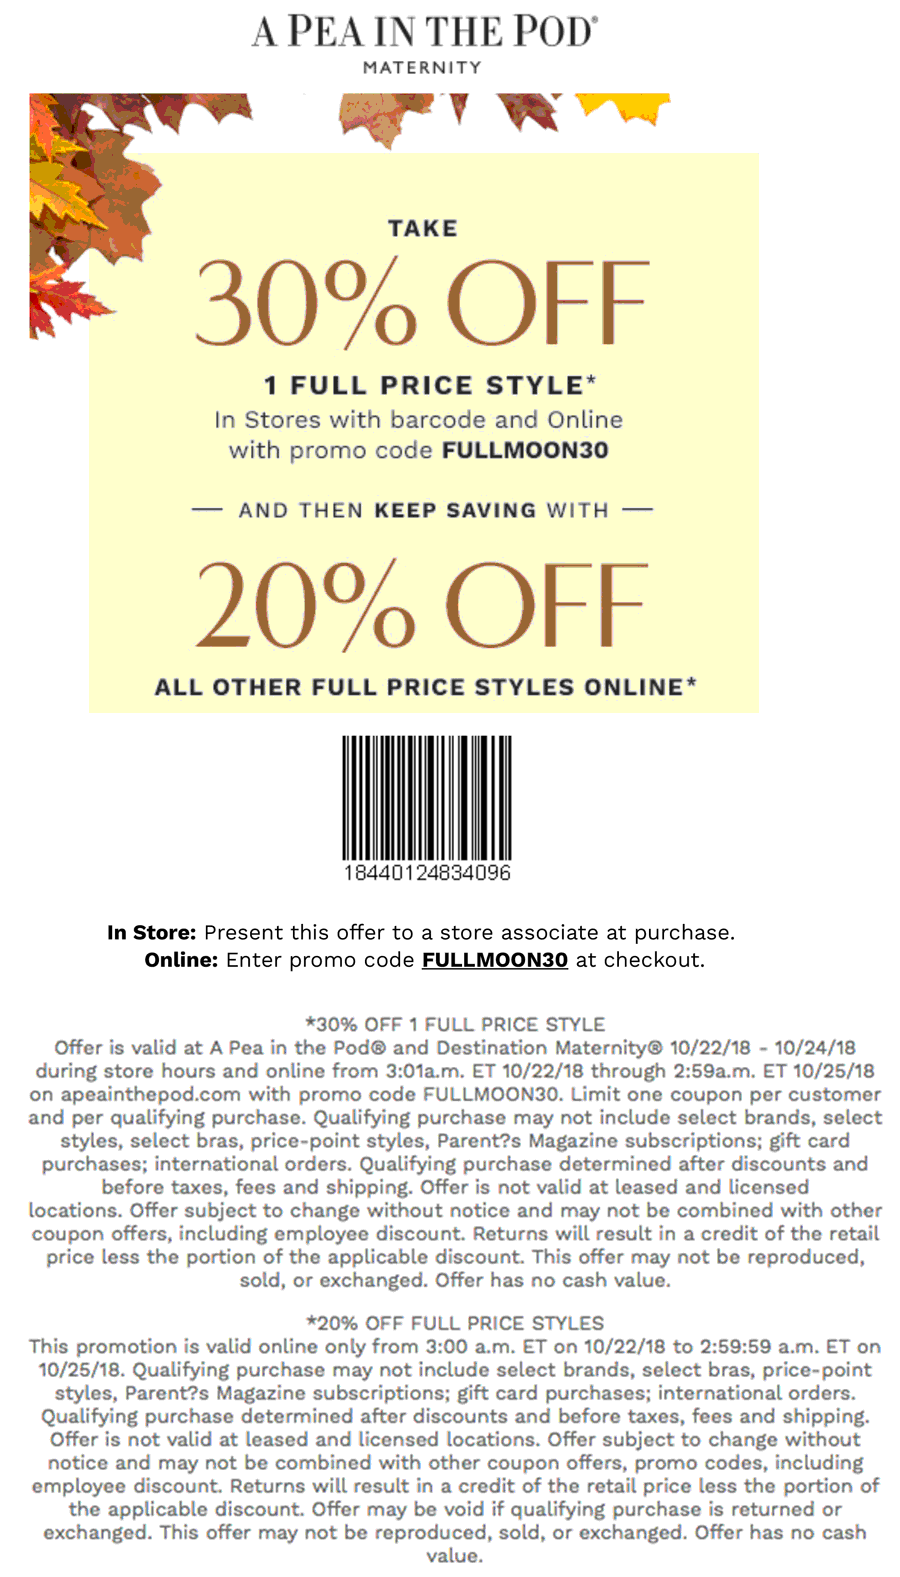 APeainthePod.com Promo Coupon 20-30% off at A Pea in the Pod maternity, or online via promo code FULLMOON30